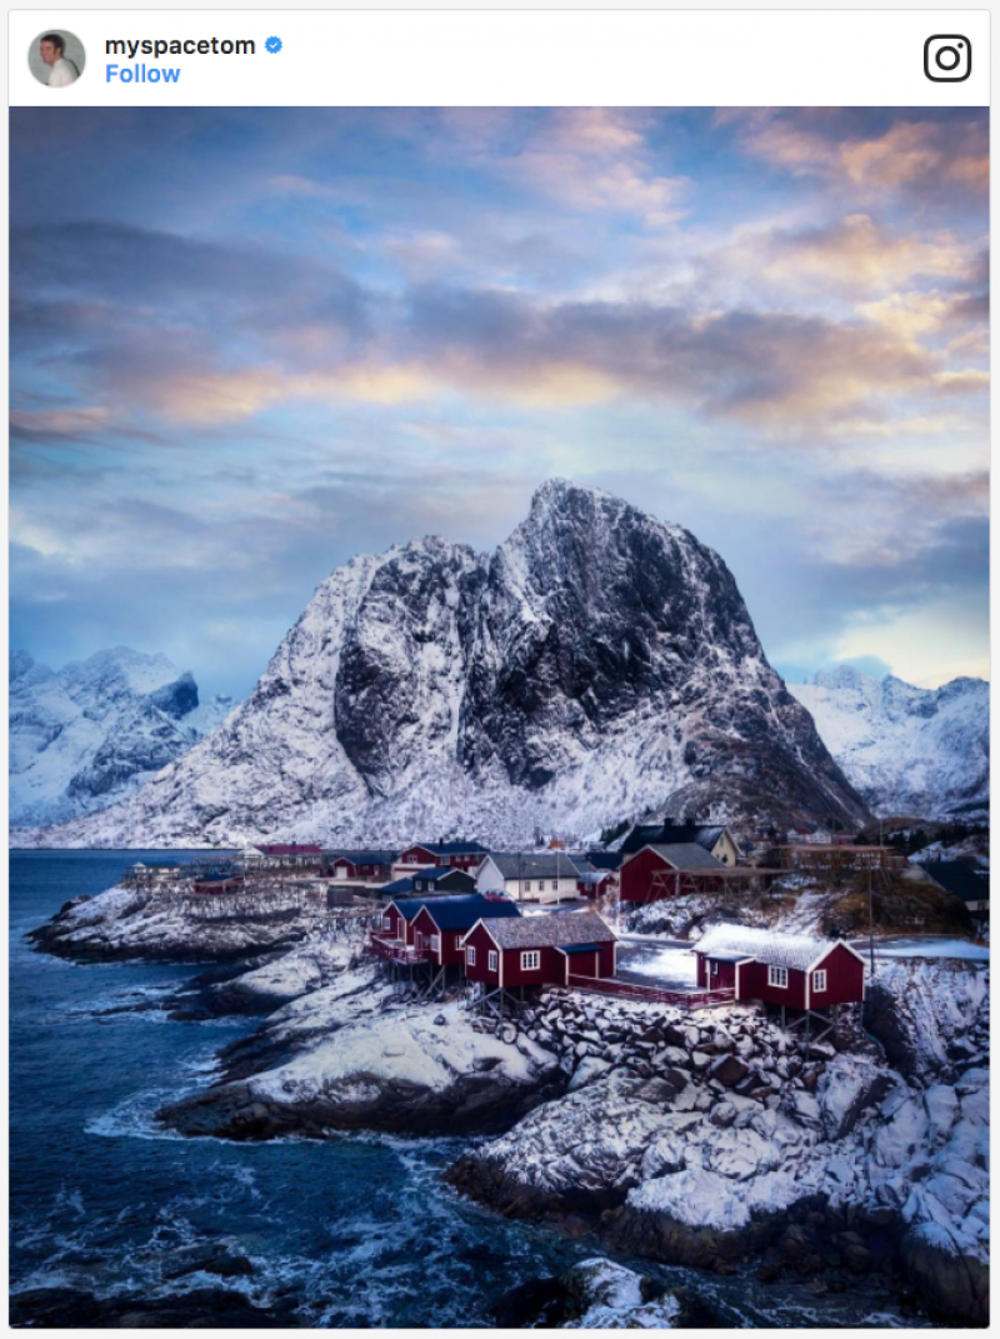 In Lofoten, Norway